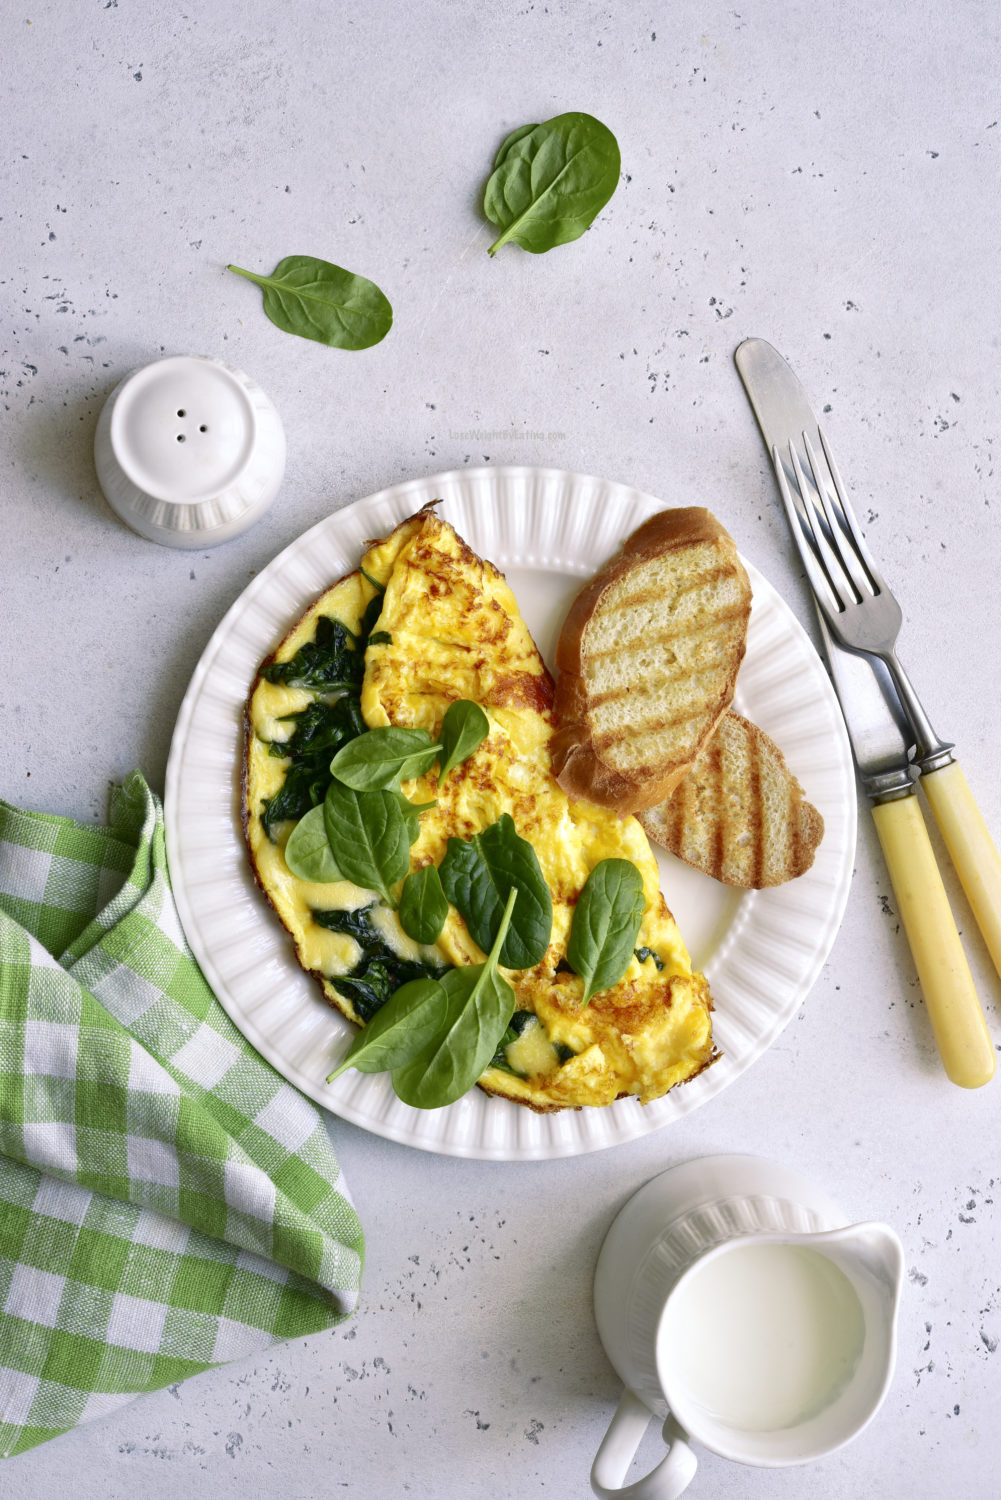 Healthy Omelet with Spinach and Cheese